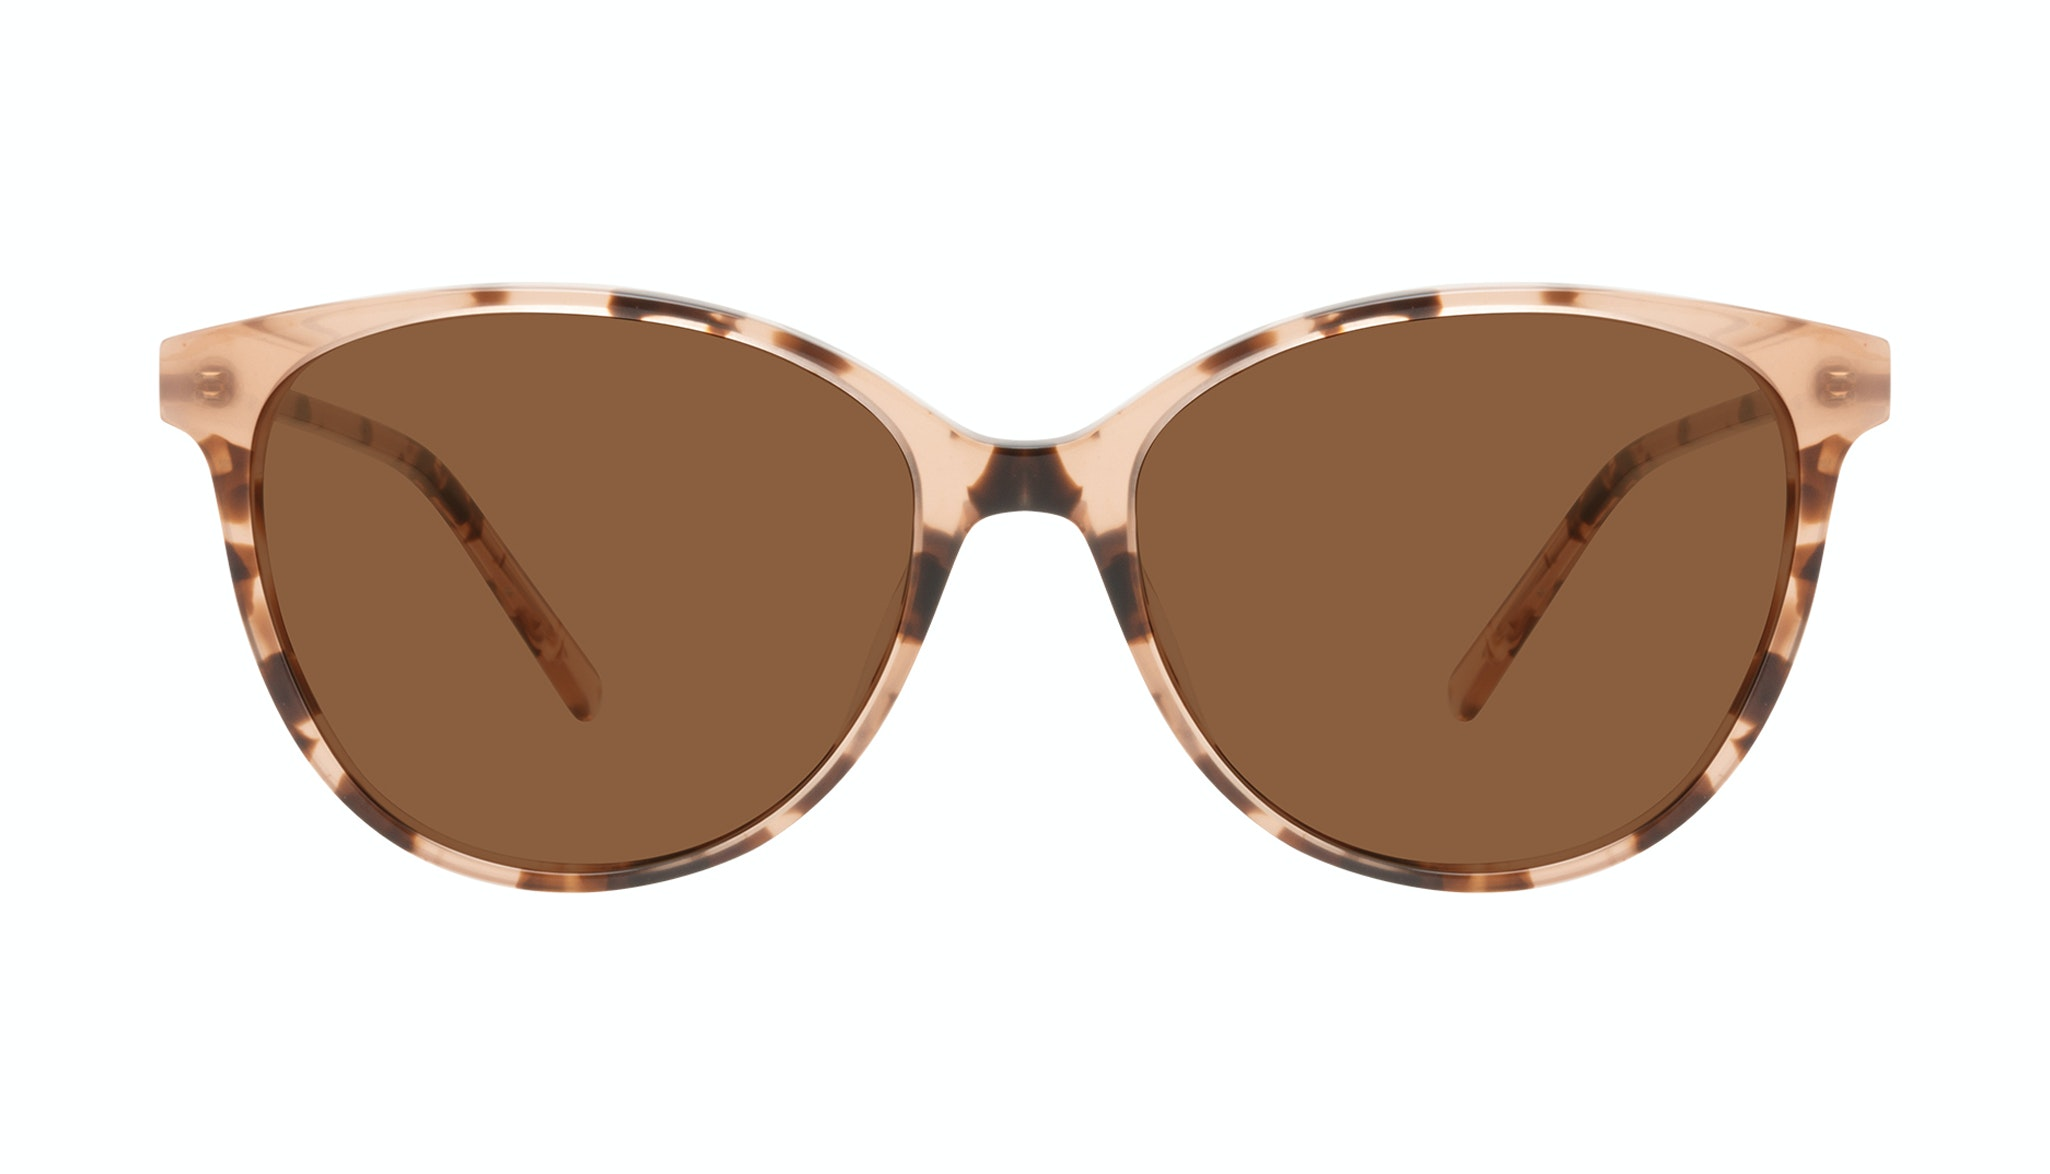 Affordable Fashion Glasses Round Sunglasses Women Imagine II Plus Tortie